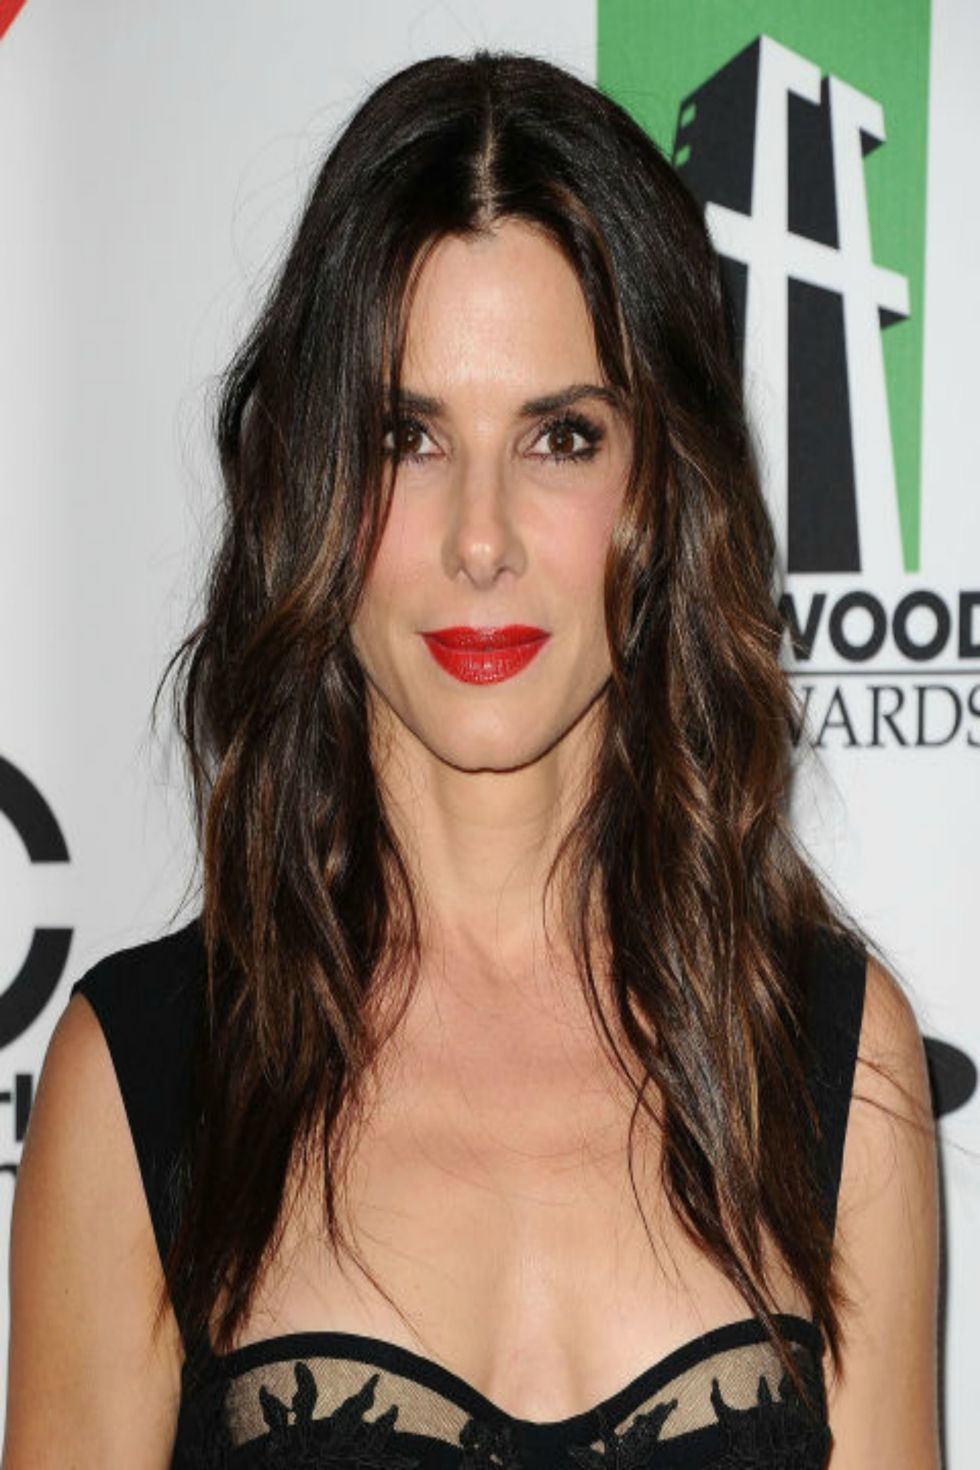 Hairstyles For Long Hair Length : Stars Hairstyles Medium Length Best Hairstyle And Haircut Ideas ->